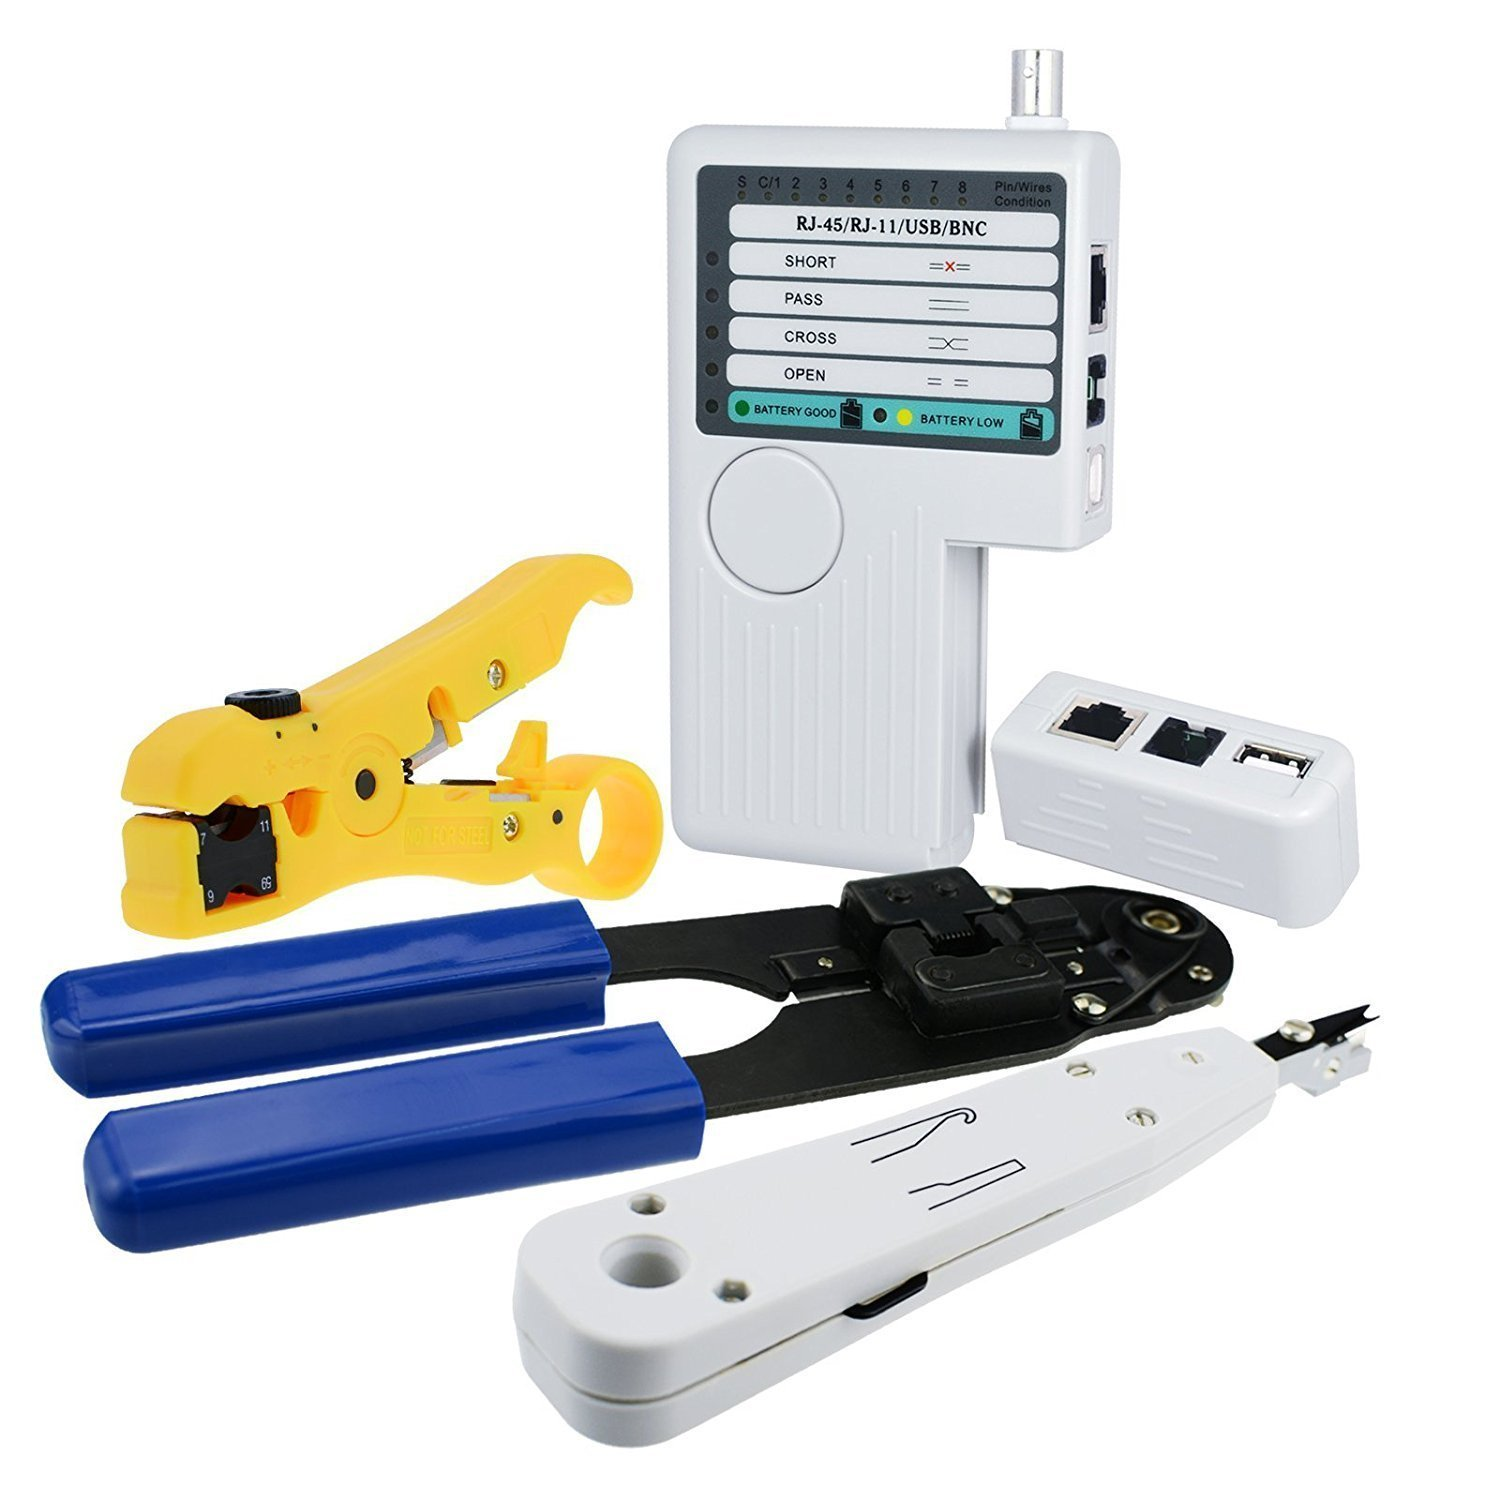 Combo Set Network Cable Tester Tool Kit - Crimping Crimper Tool Punch Down Tool Wire Stripper Cutter, RJ45 RJ11 USB BNC Flat UTP Cat5 Cat6 Coax cable Stripping Universal Tool